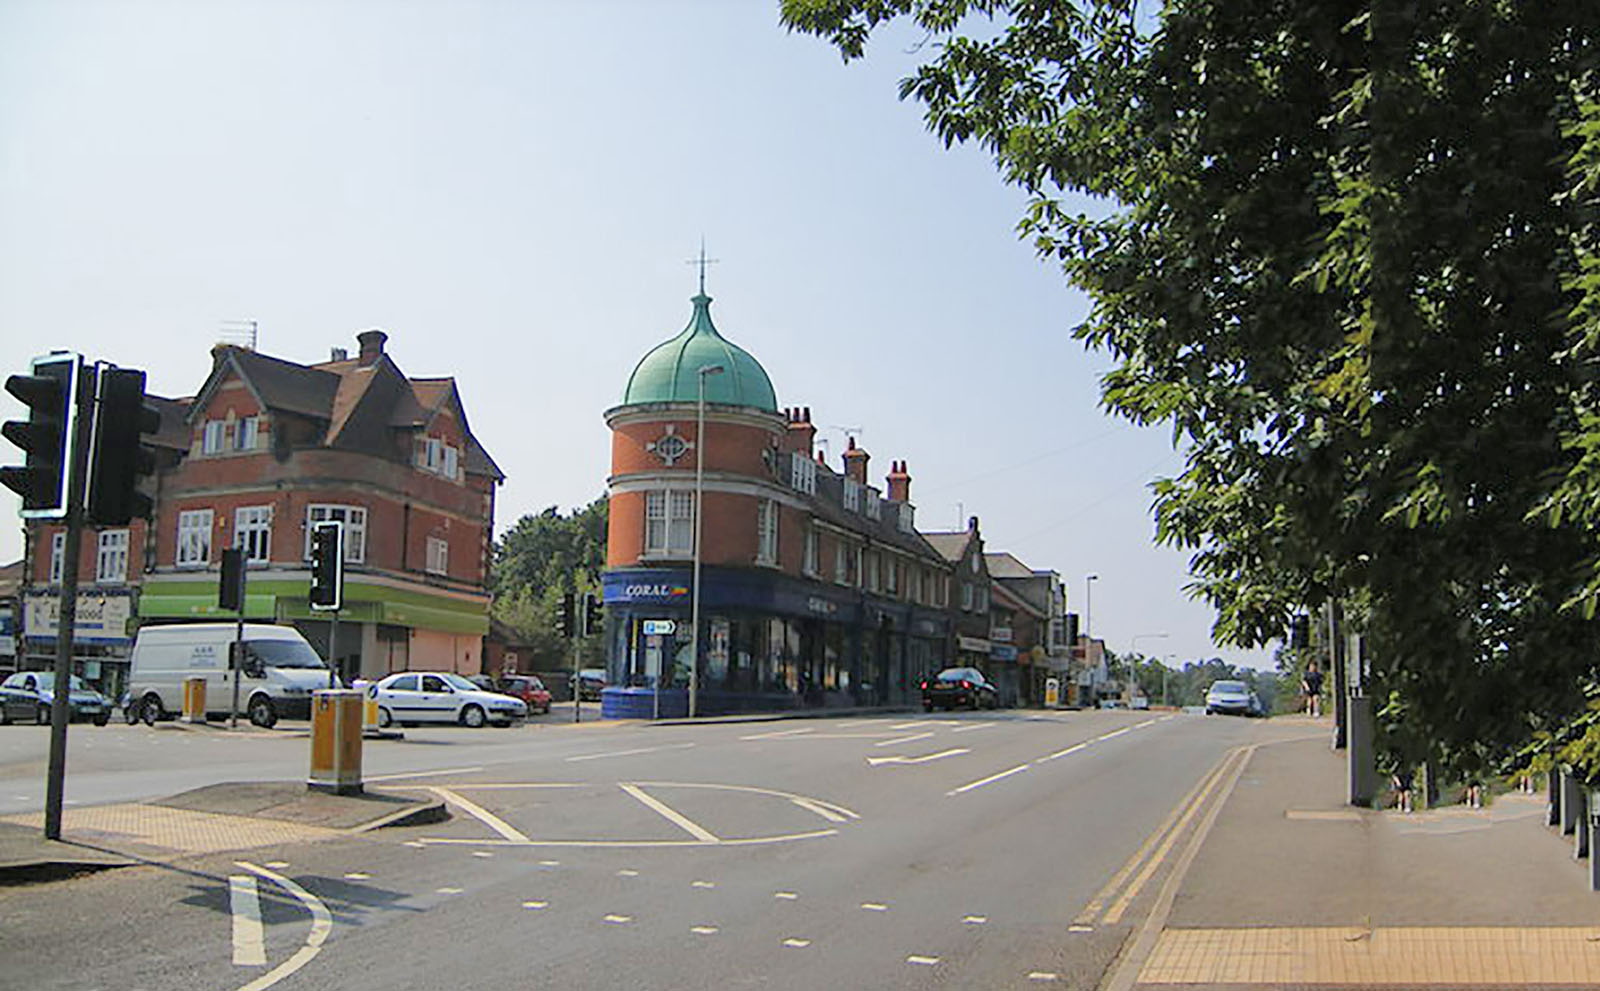 Bordon high street.